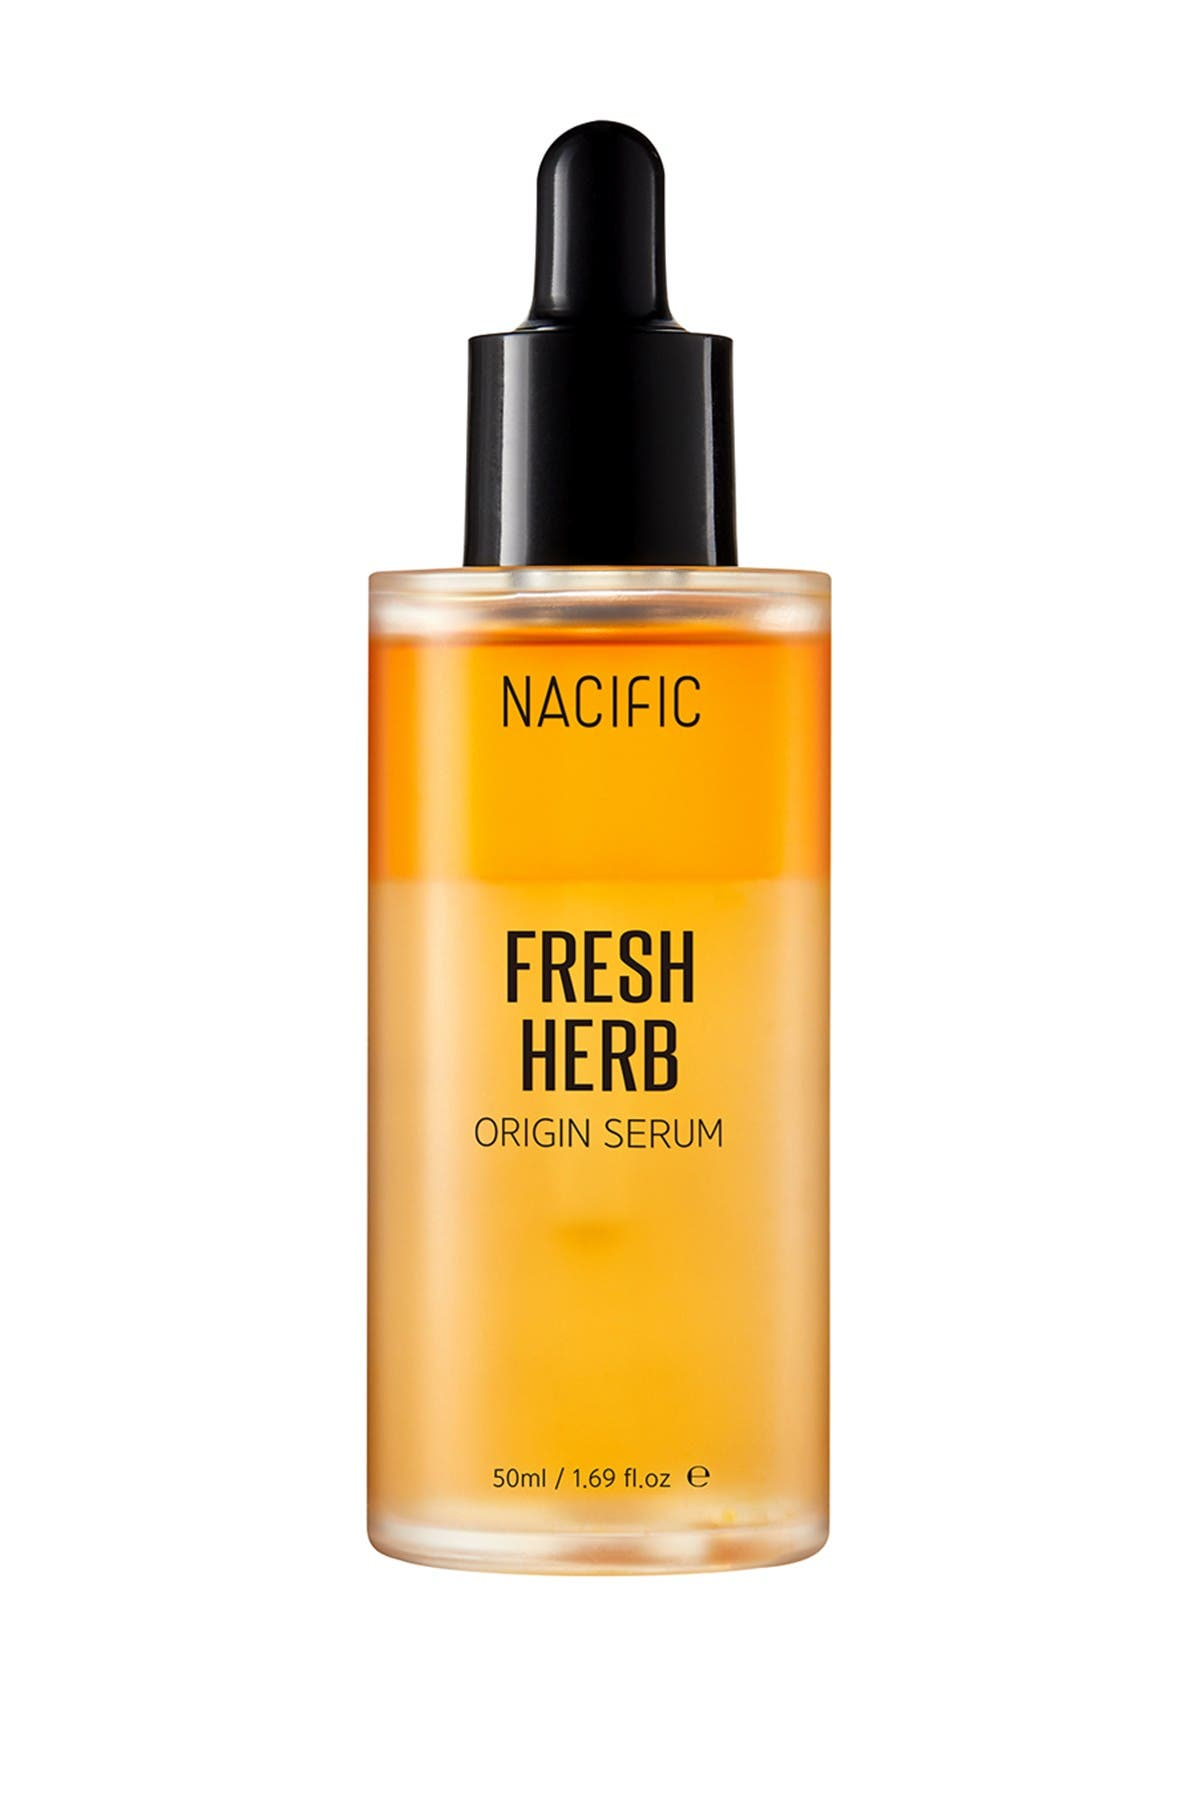 Image of NACIFIC Fresh Herb Origin Serum